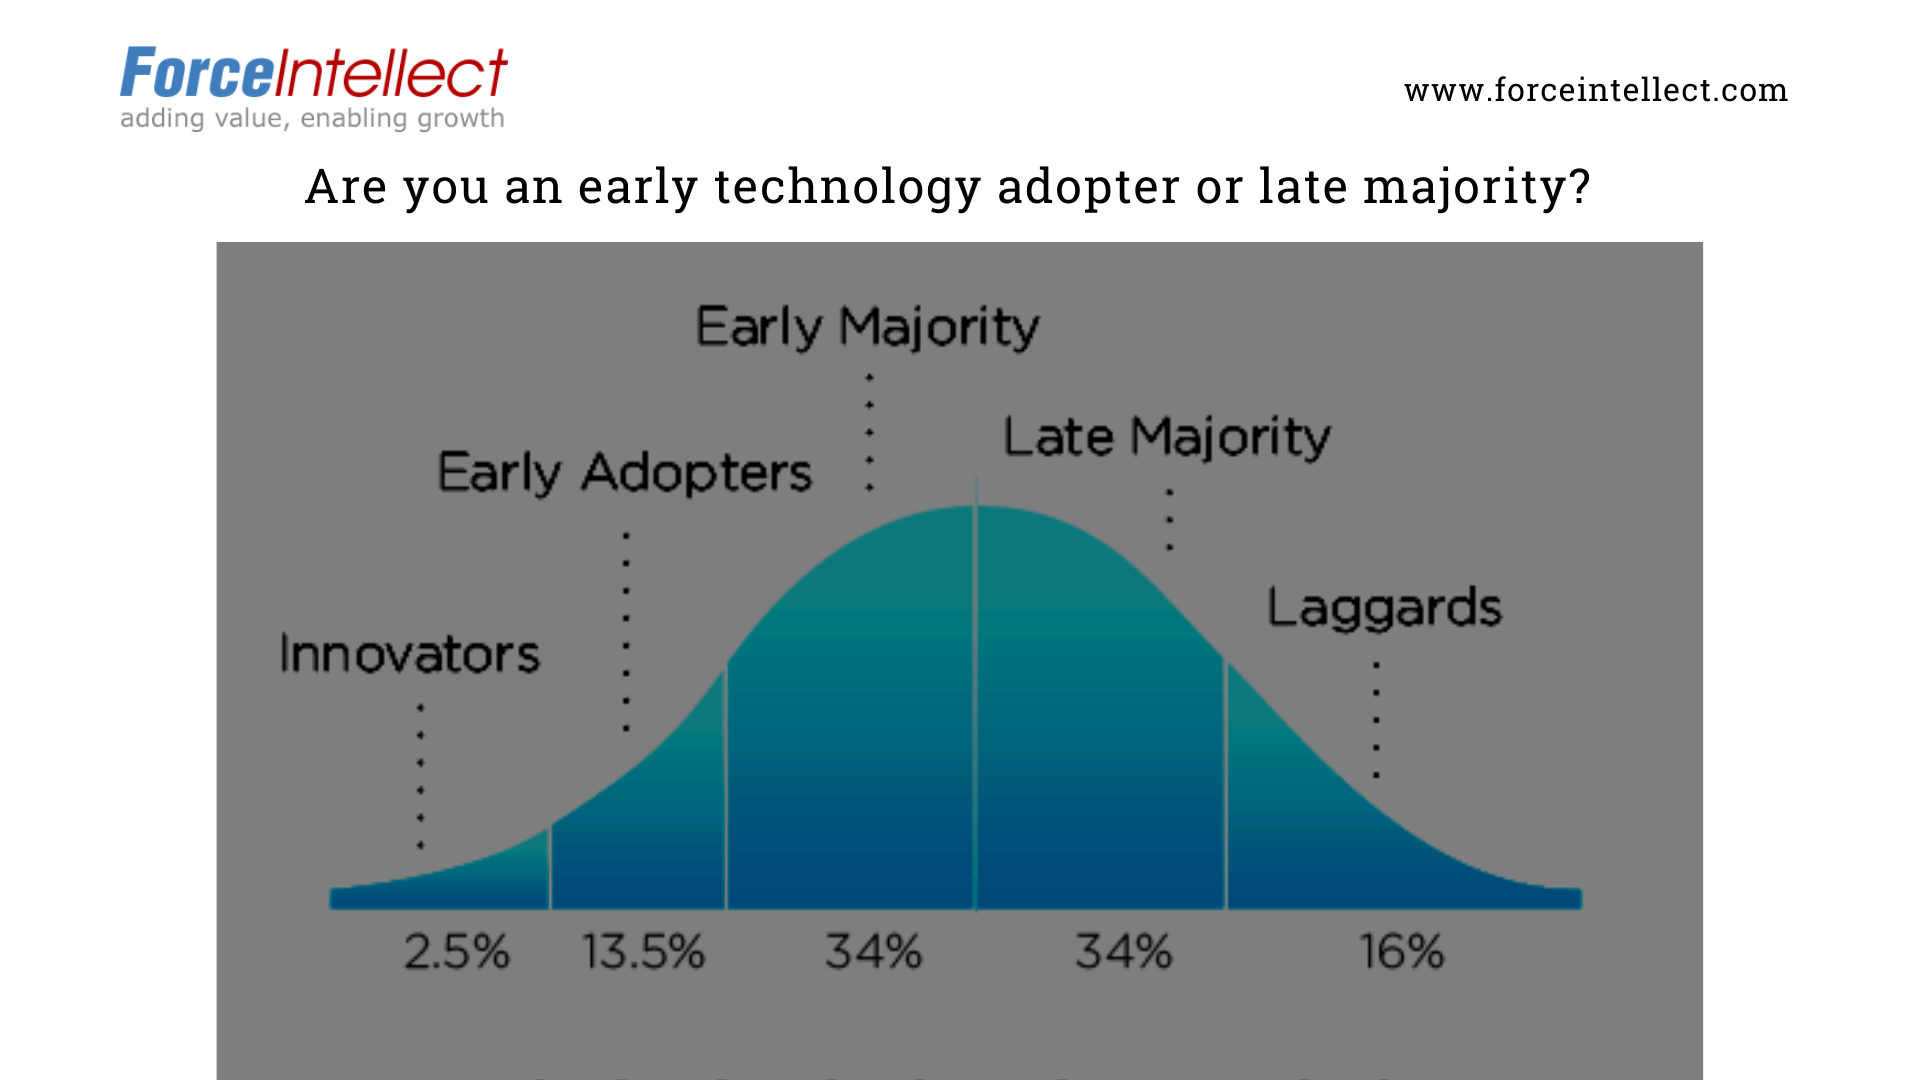 Are you an early technology adopter